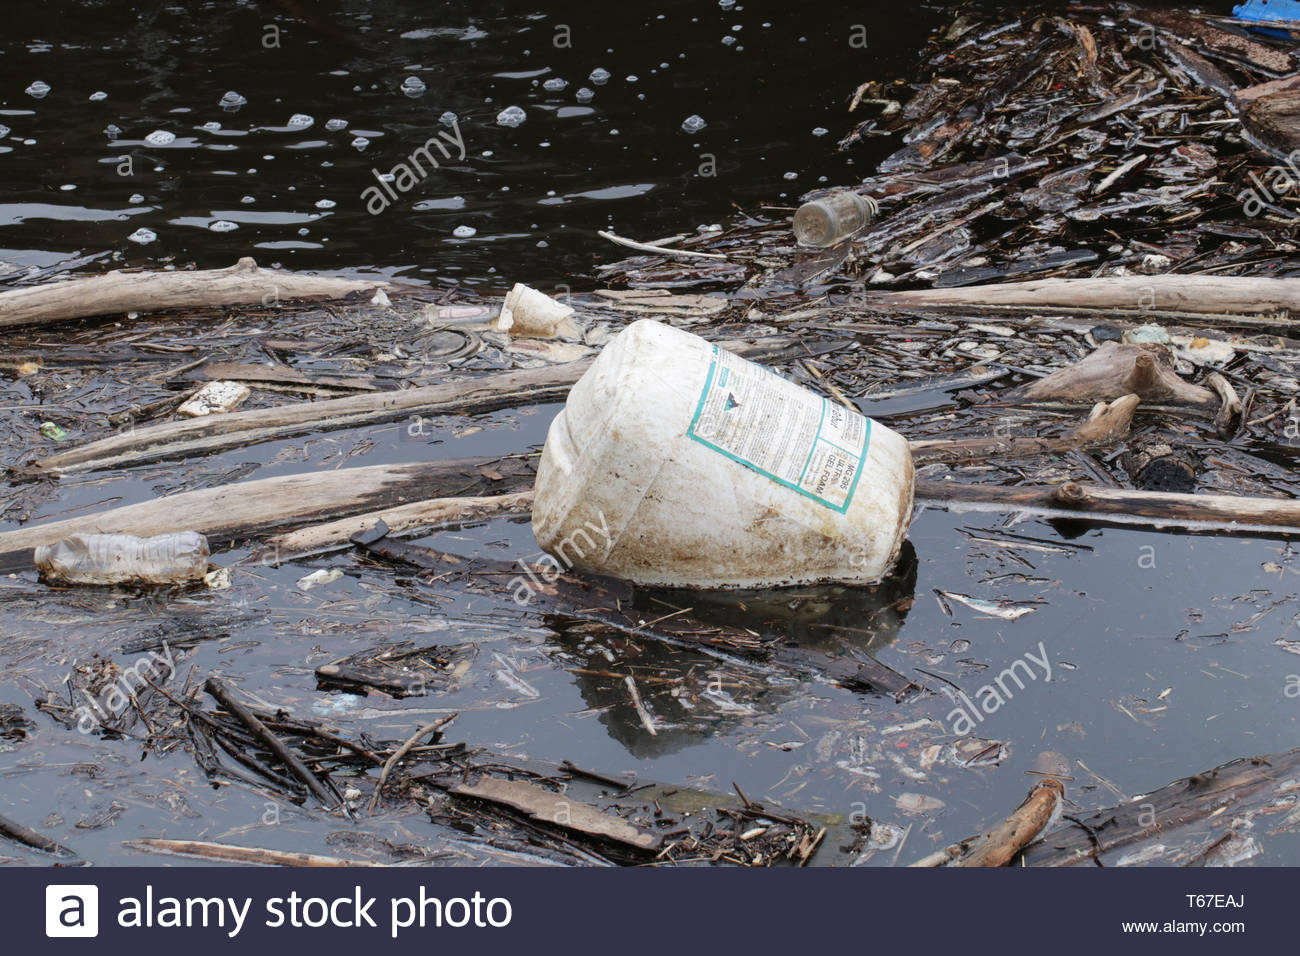 MINNEAPOLIS, MN - APRIL 29 2019: A large plastic jug floats among other plastic pollution and river debris in the Mississippi River. - Stock Image